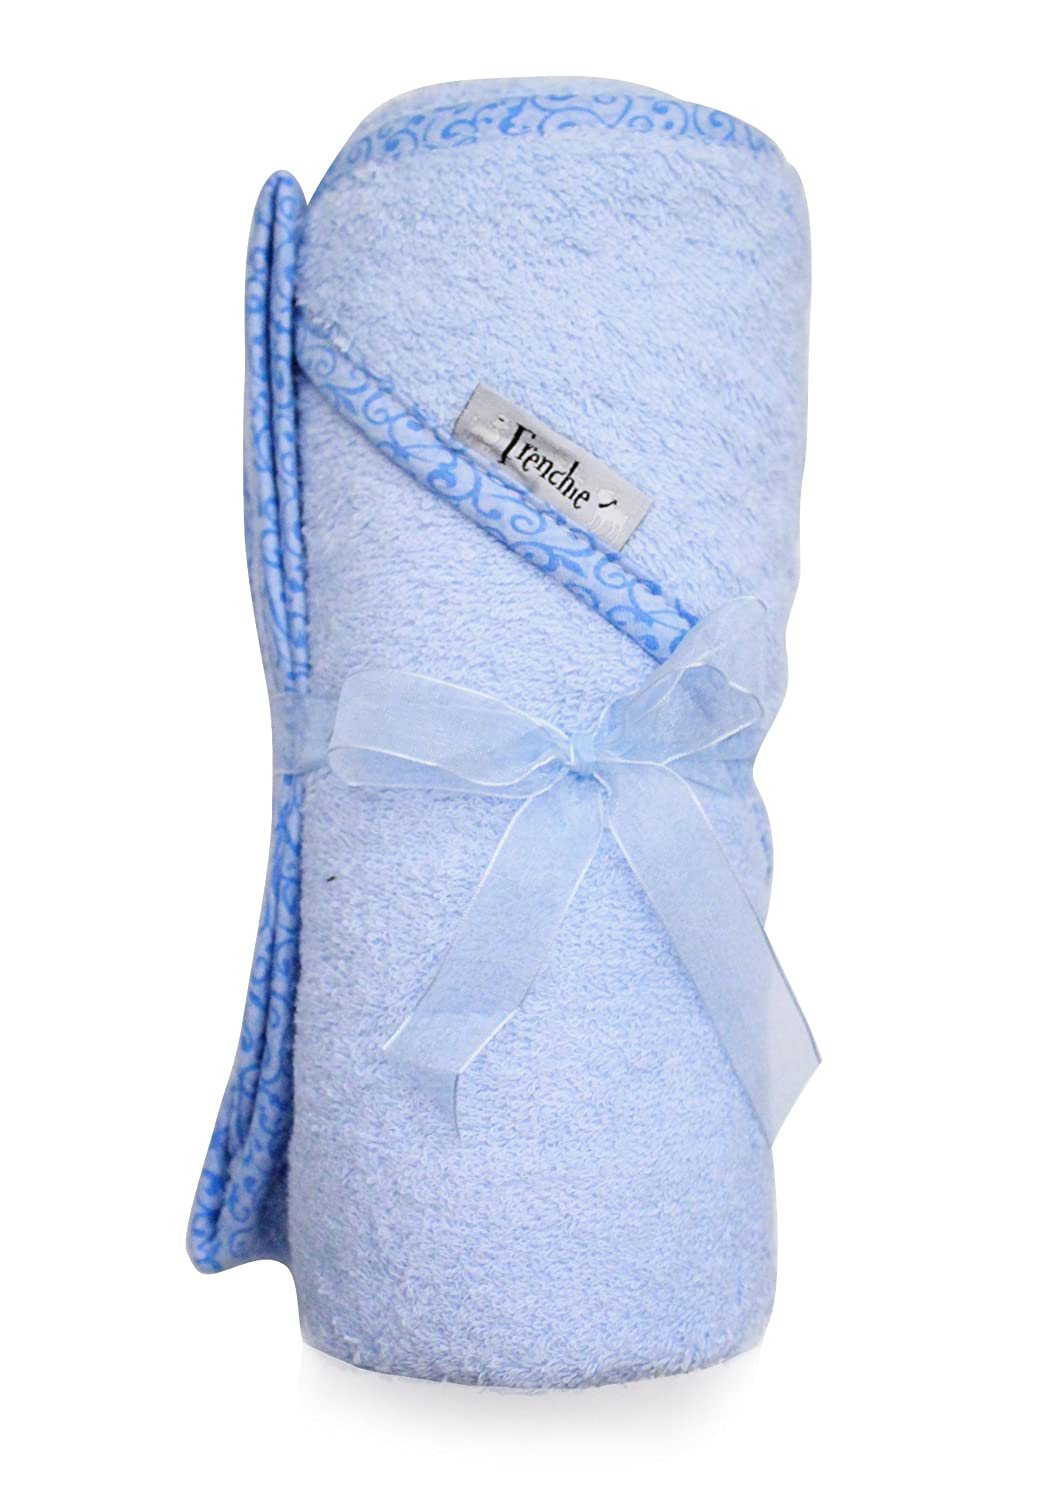 Extra Large 40x30 Absorbent Hooded Towel, Solid Blue with Swirl Print, Frenchie Mini Couture Healthcenter 216